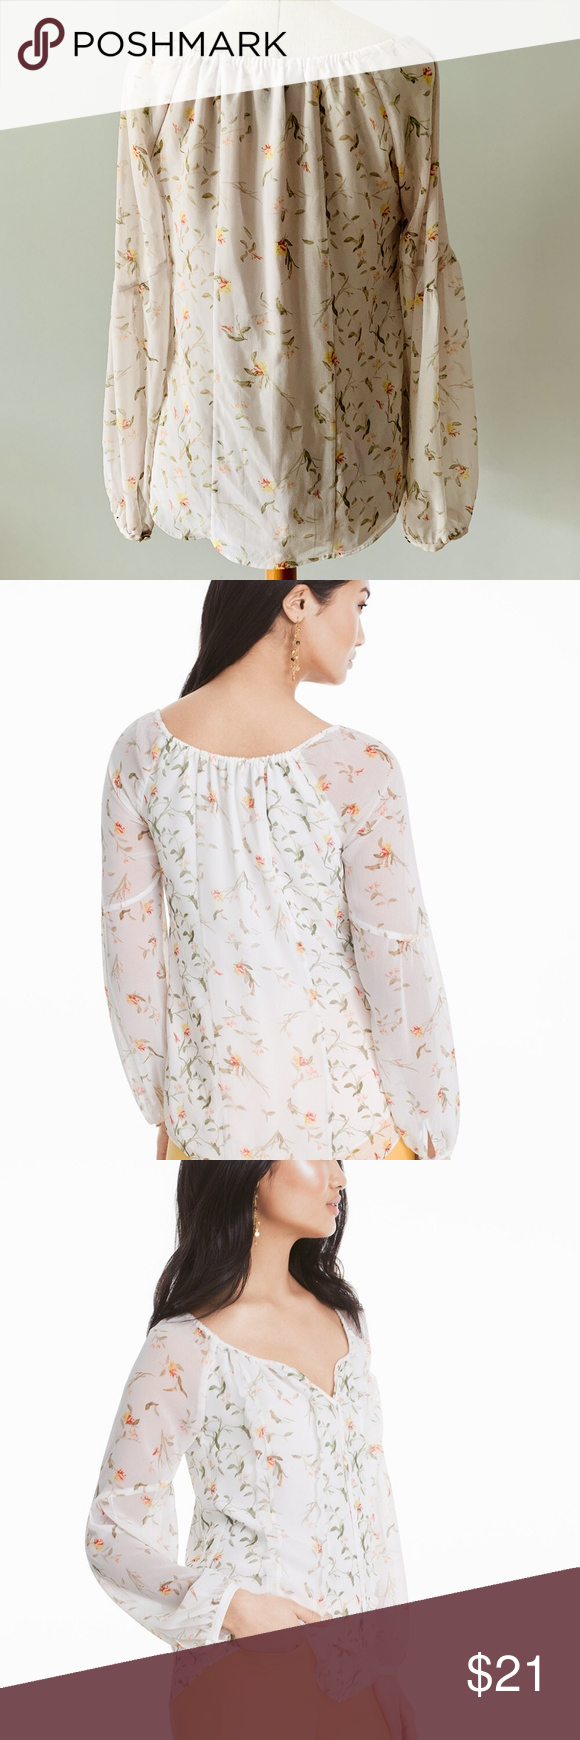 WHBM FLORAL BLOUSE One of the easiest ways to pull off the season's big floral…